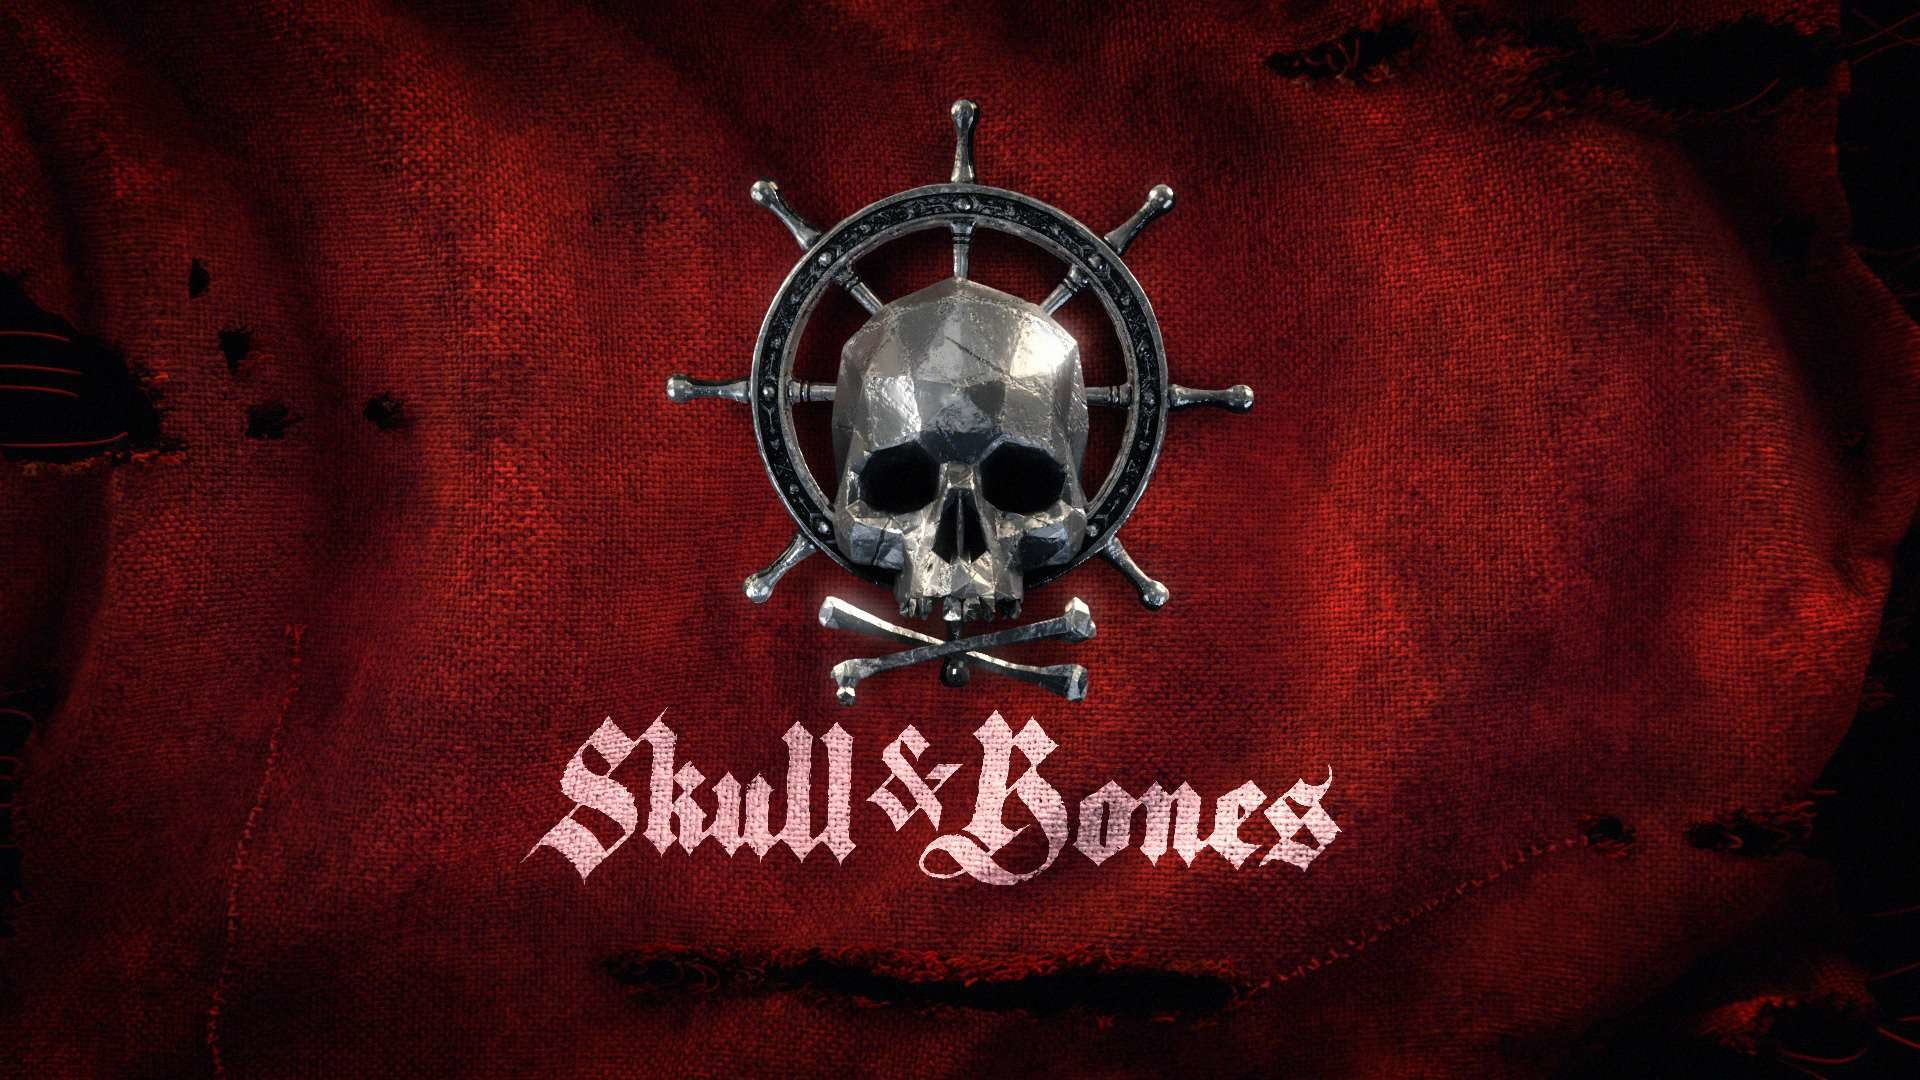 Skull and Bones Wallpaper (63+ images)